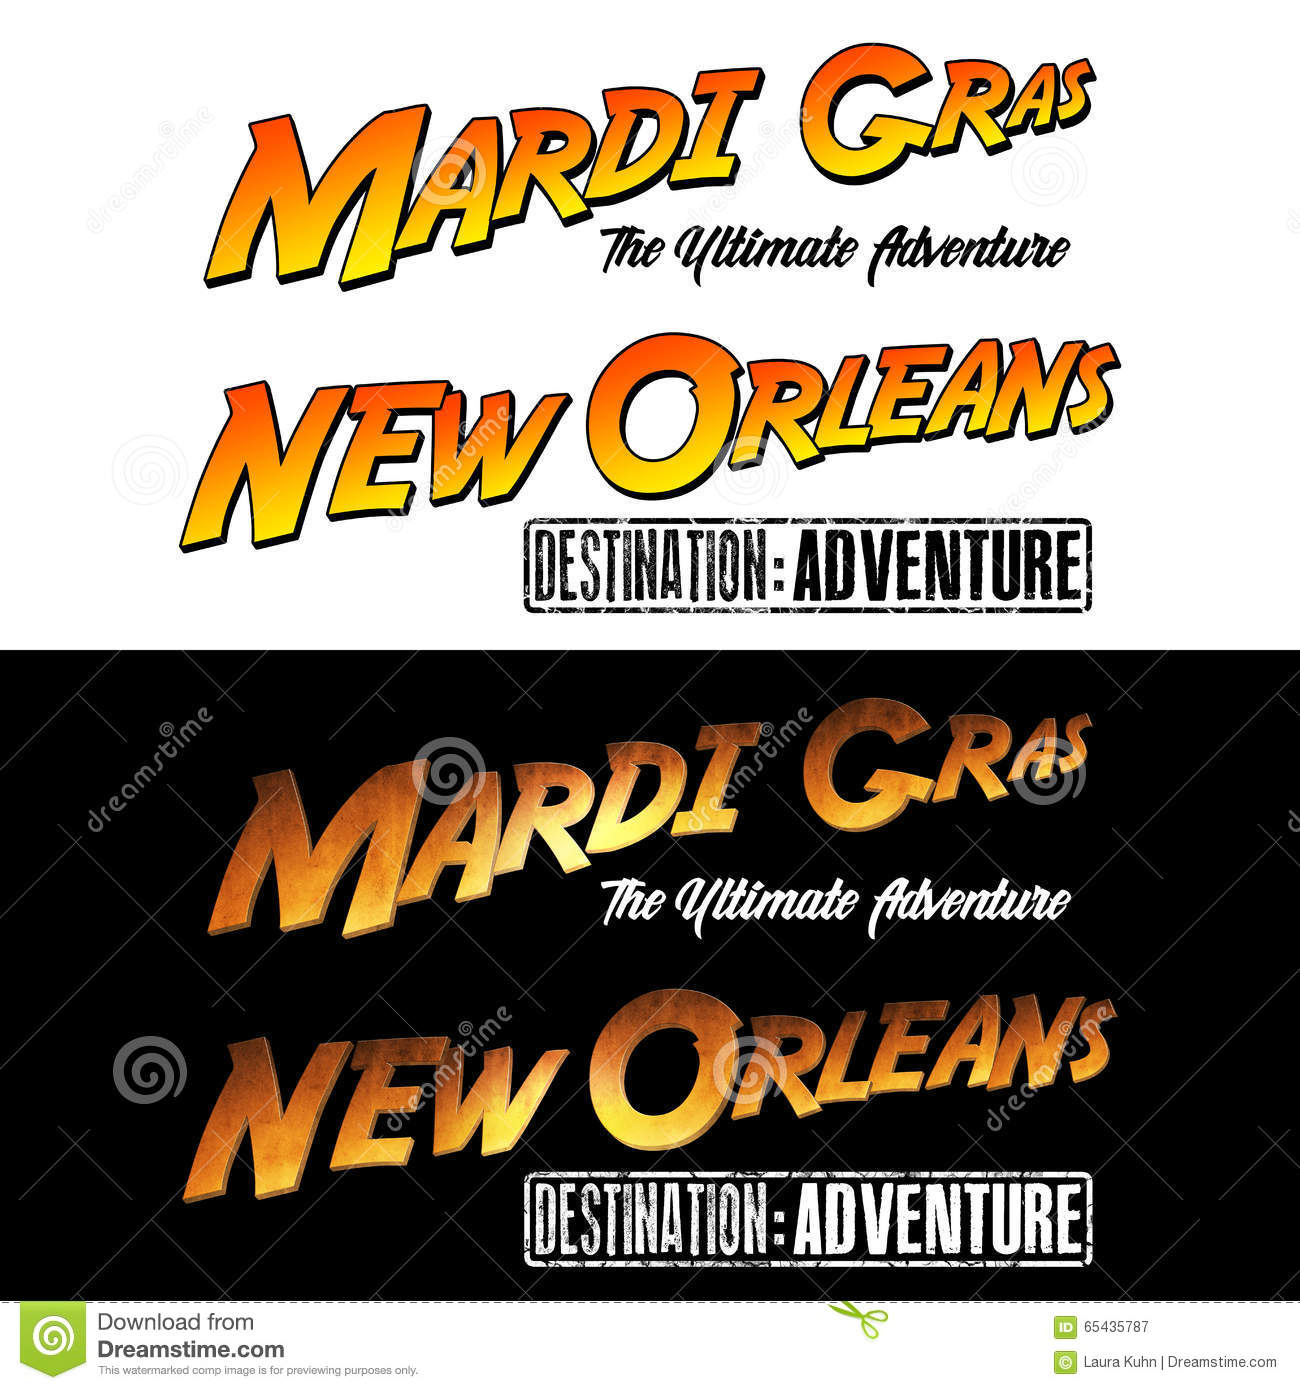 New Orleans Mardi Gras Adventure